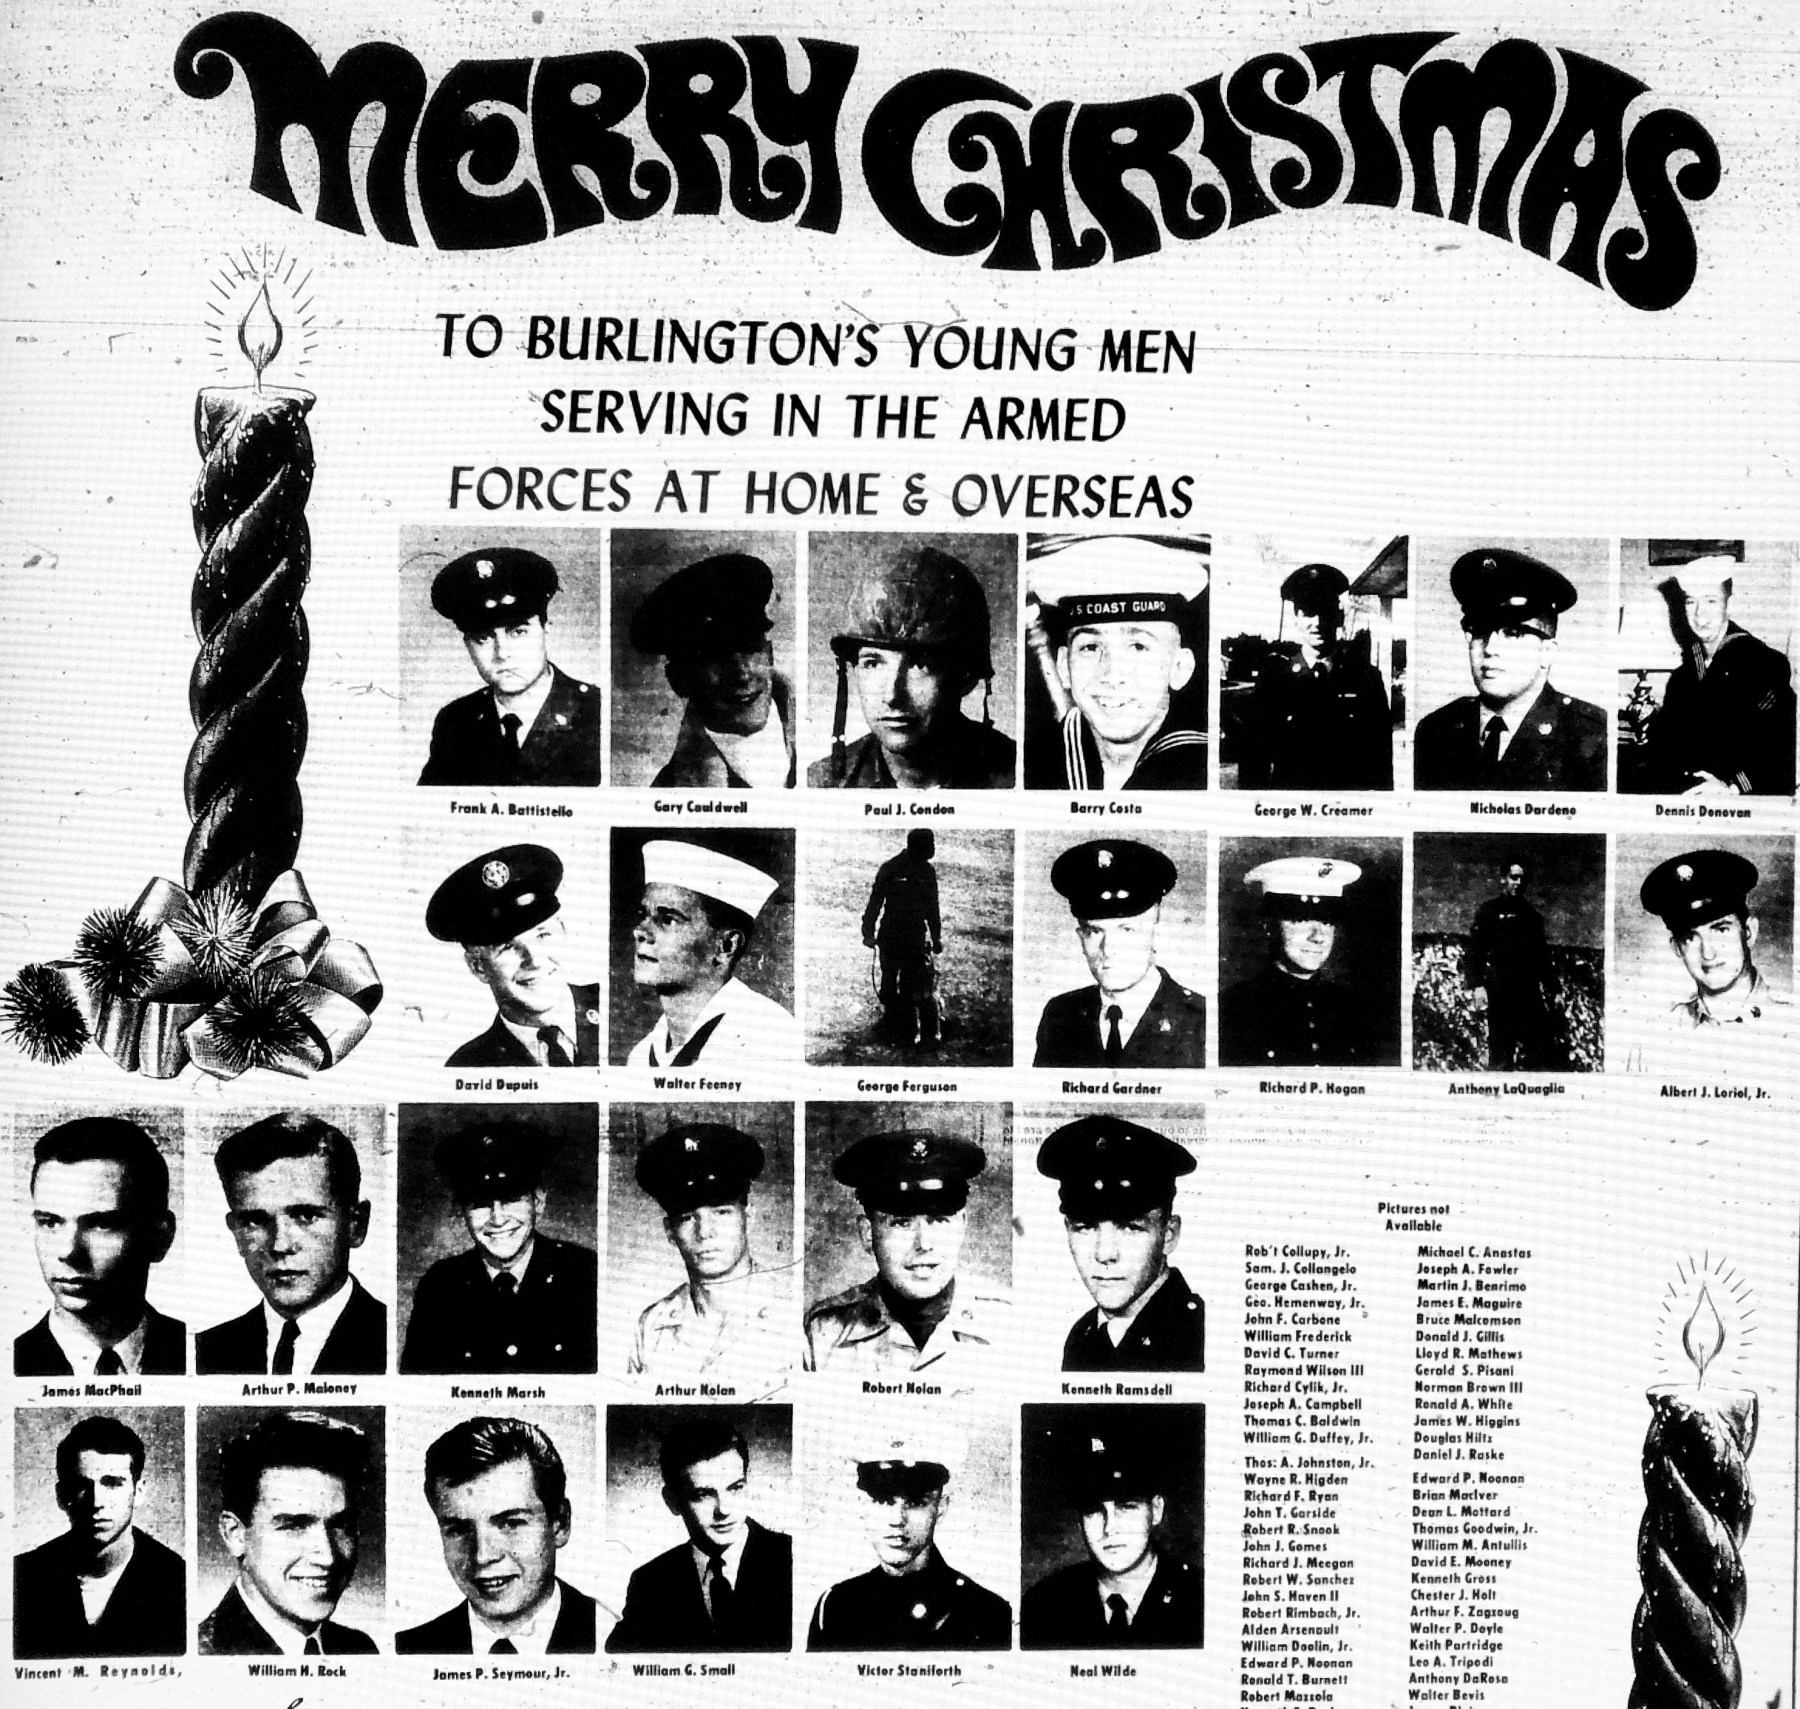 1968 Merry Xmas armed forces ad, Burlington MA